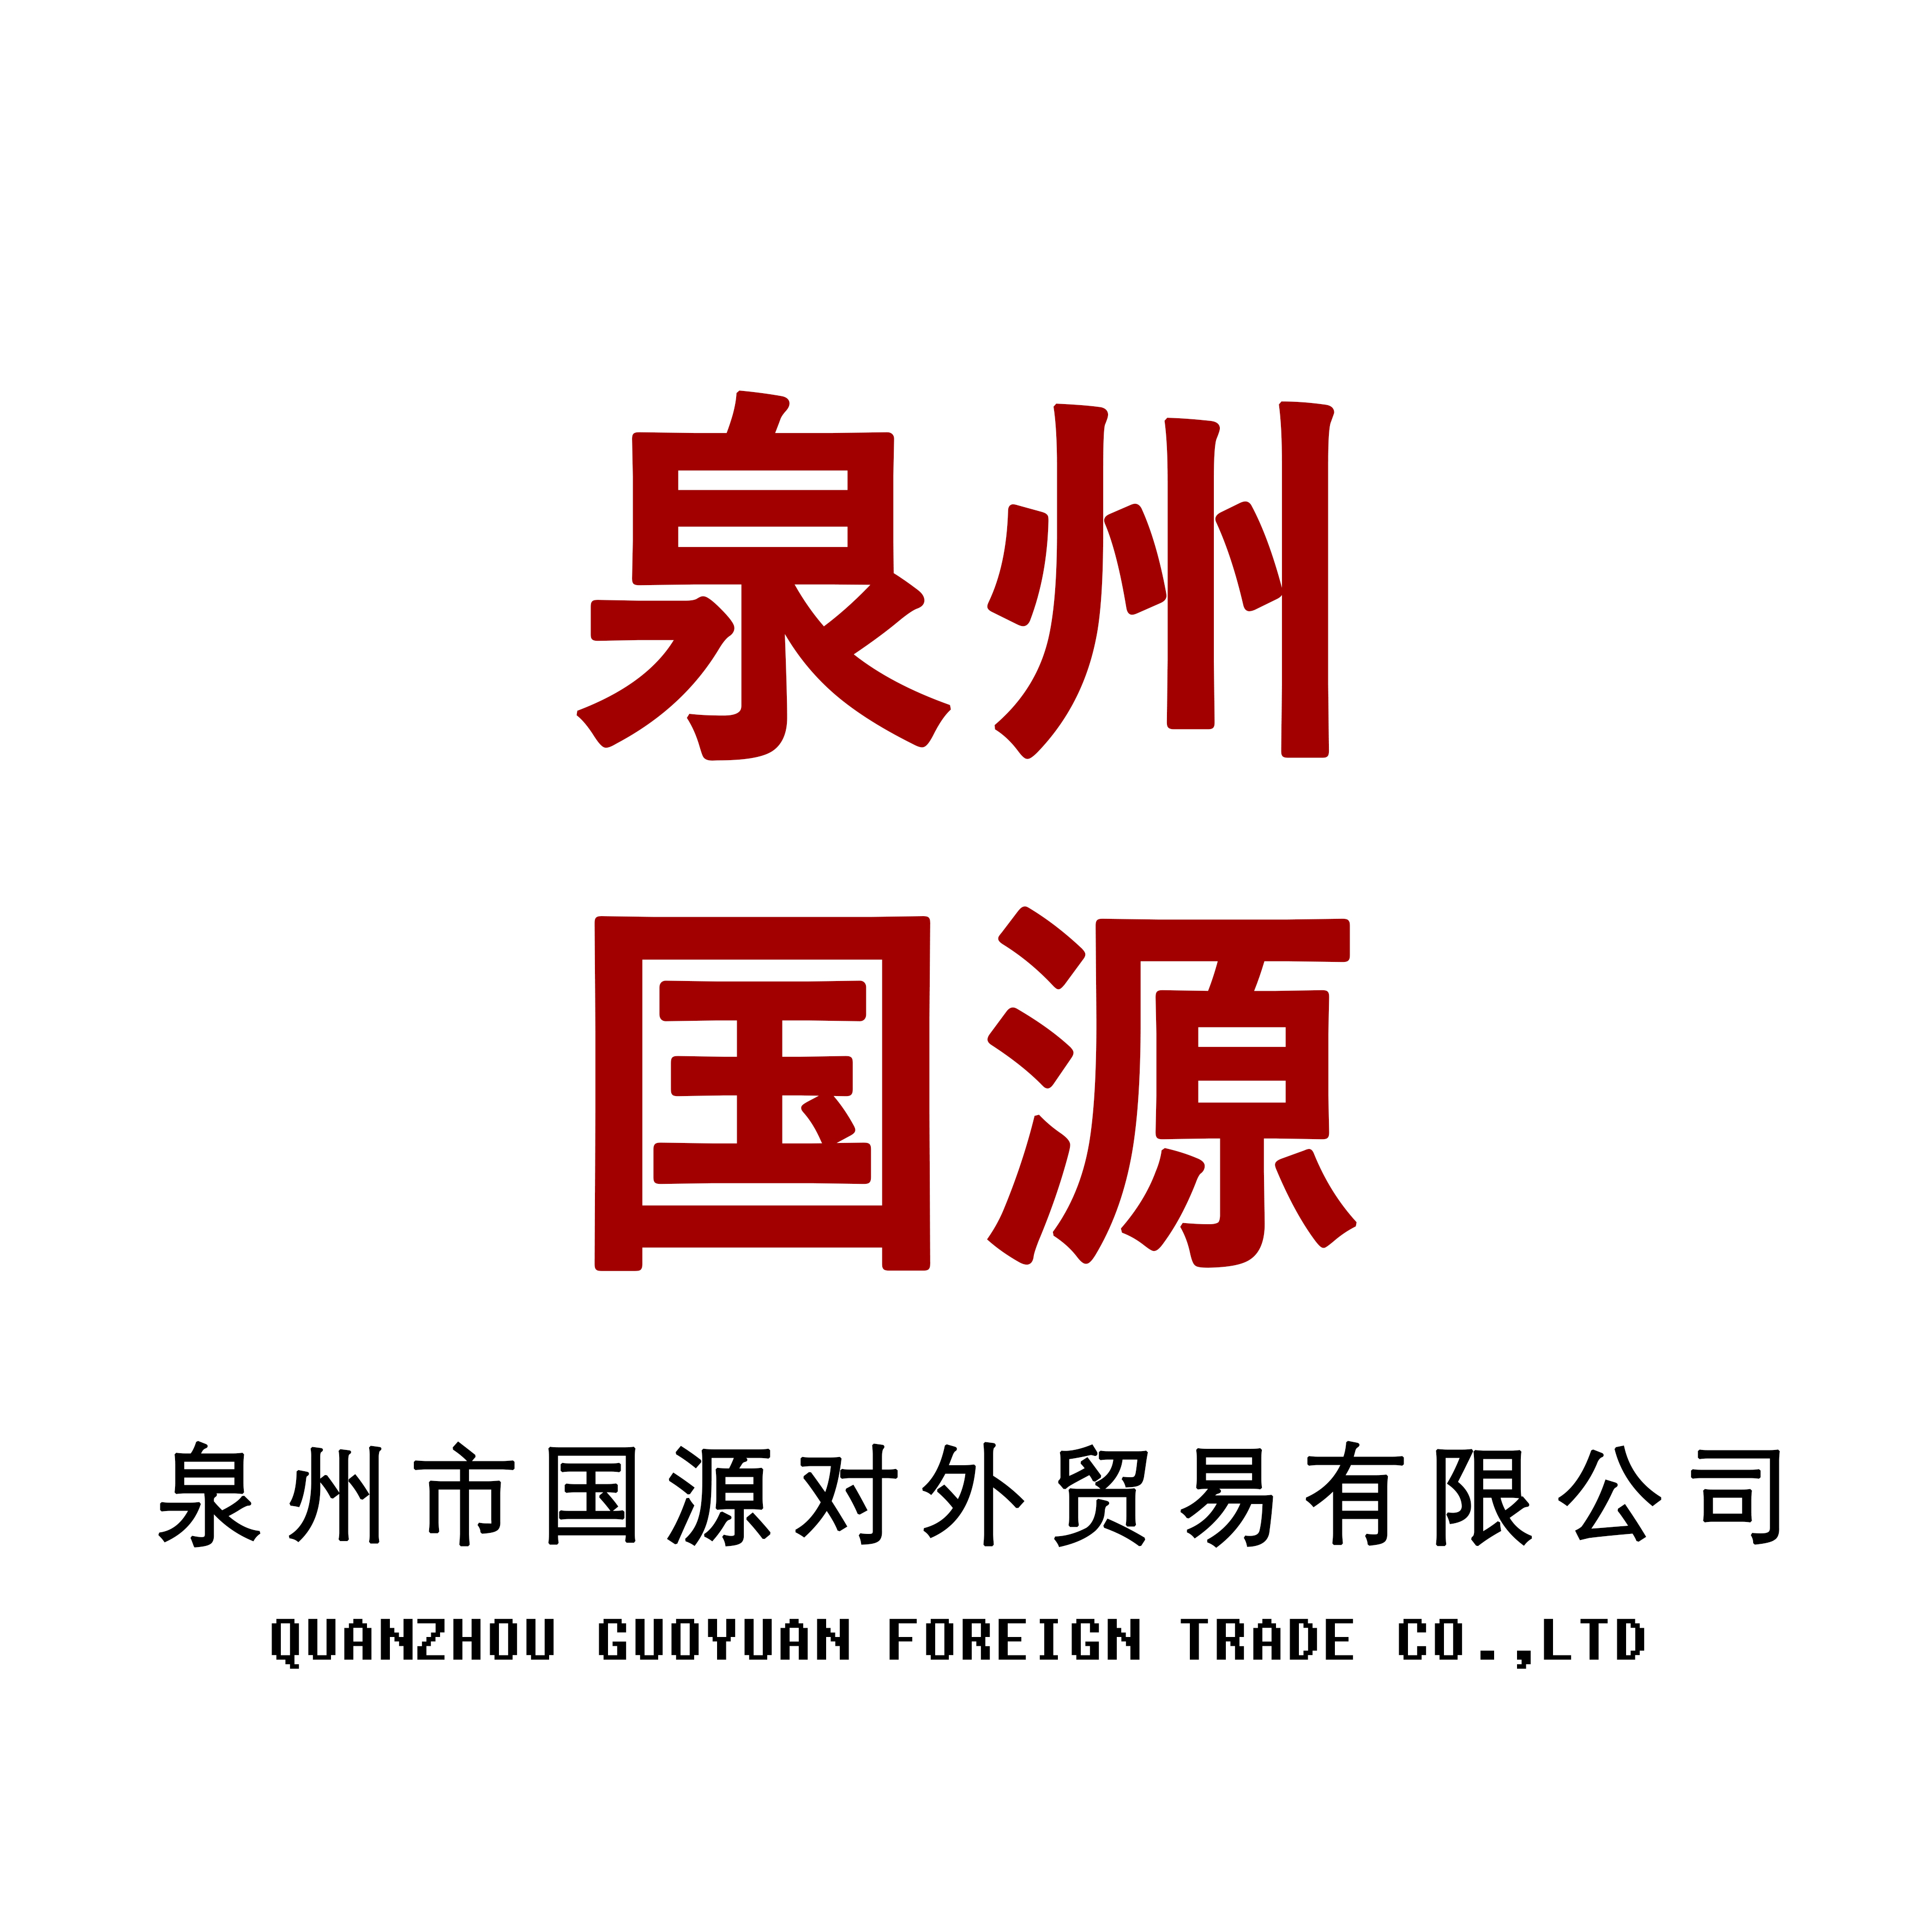 QUANZHOU GUOYUAN FOREIGN TRADE CO., LTD.